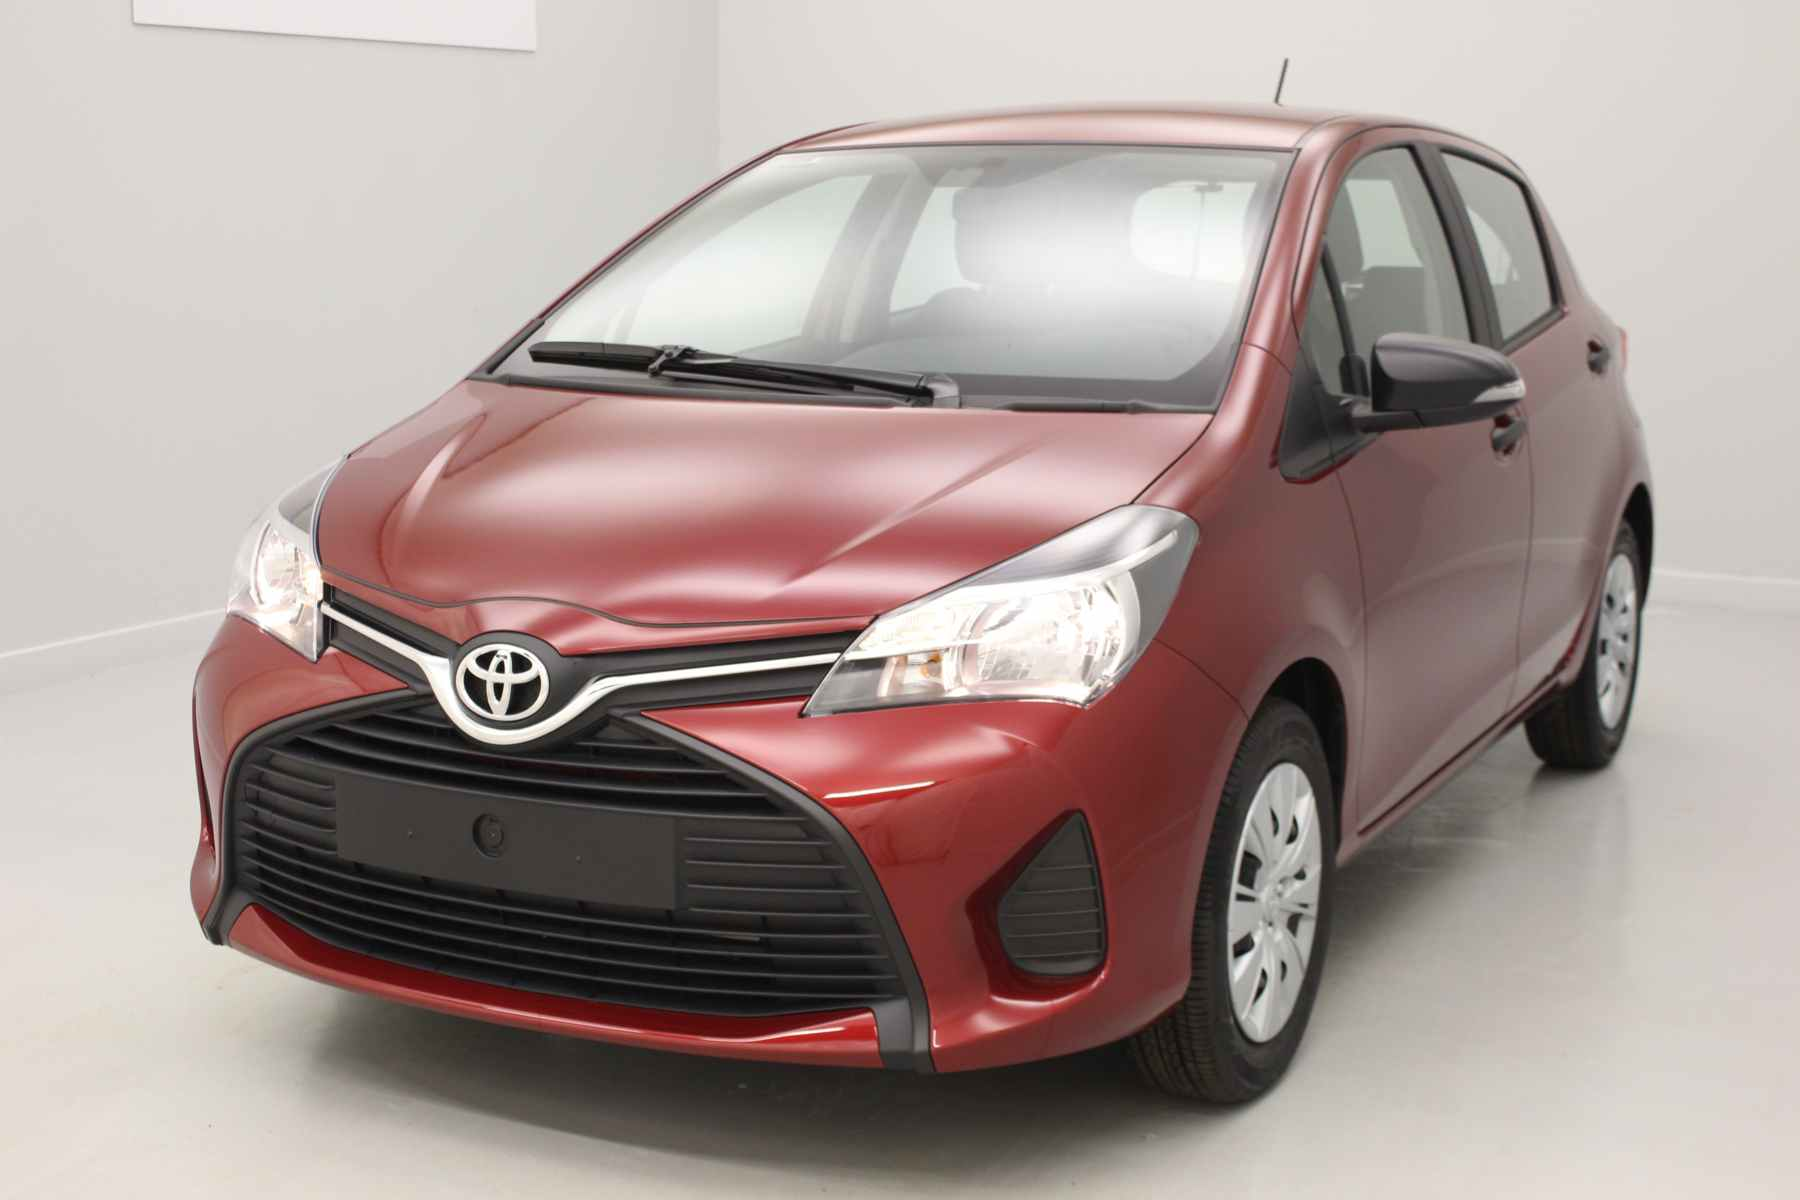 TOYOTA Yaris 69 VVT-i Active Rouge Allure + Climatisation manuelle avec options